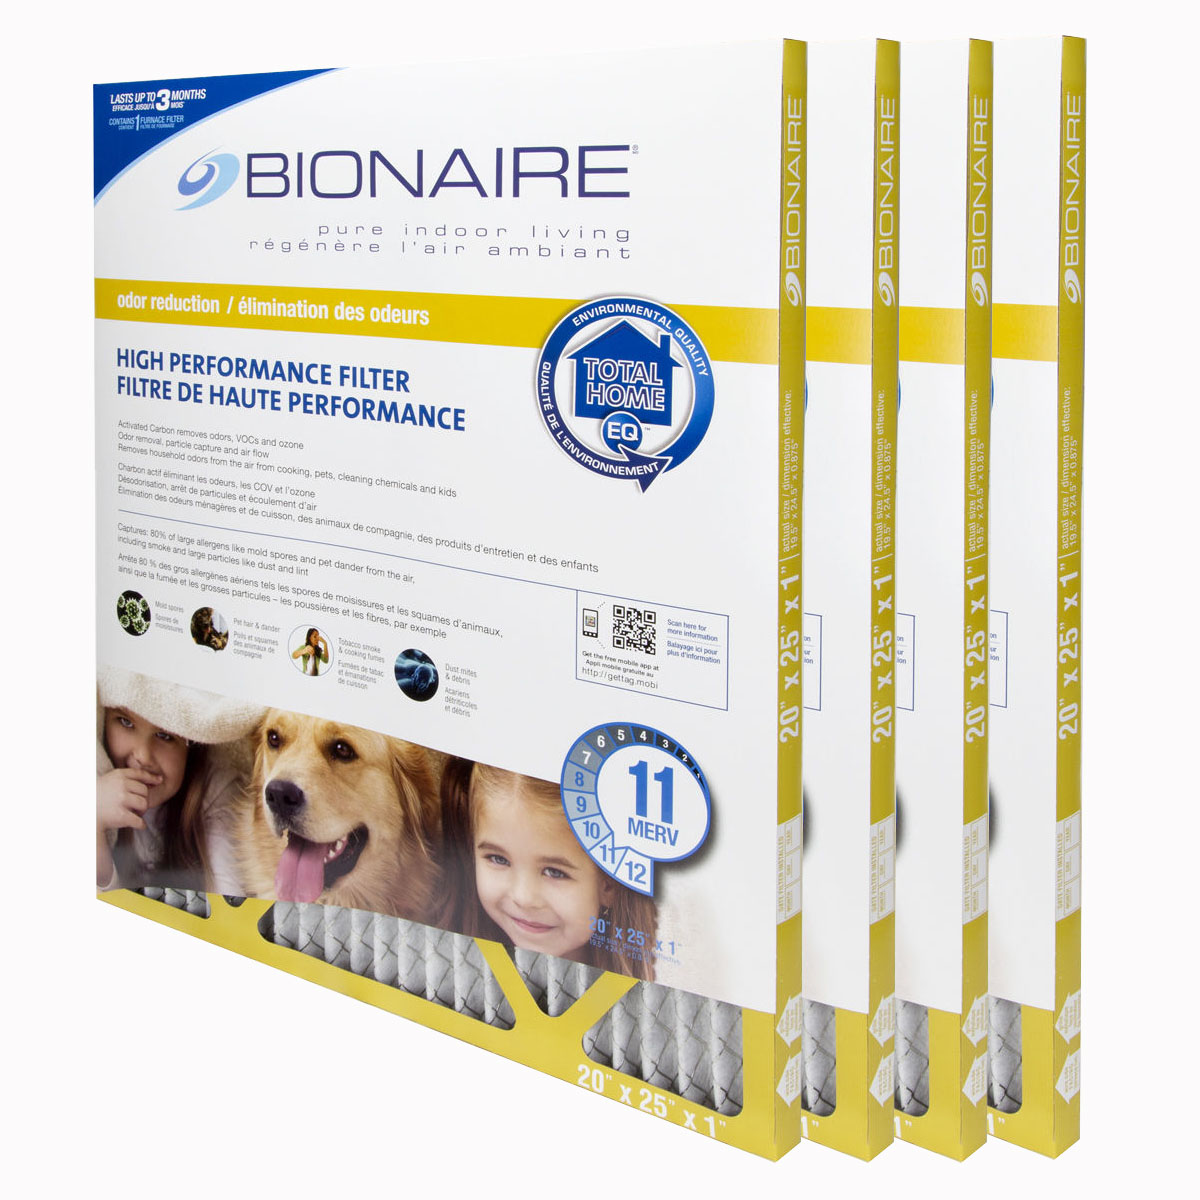 Bionaire® Odour Reduction MERV 11 Furnace Filter - 20x25 - 4 Pack